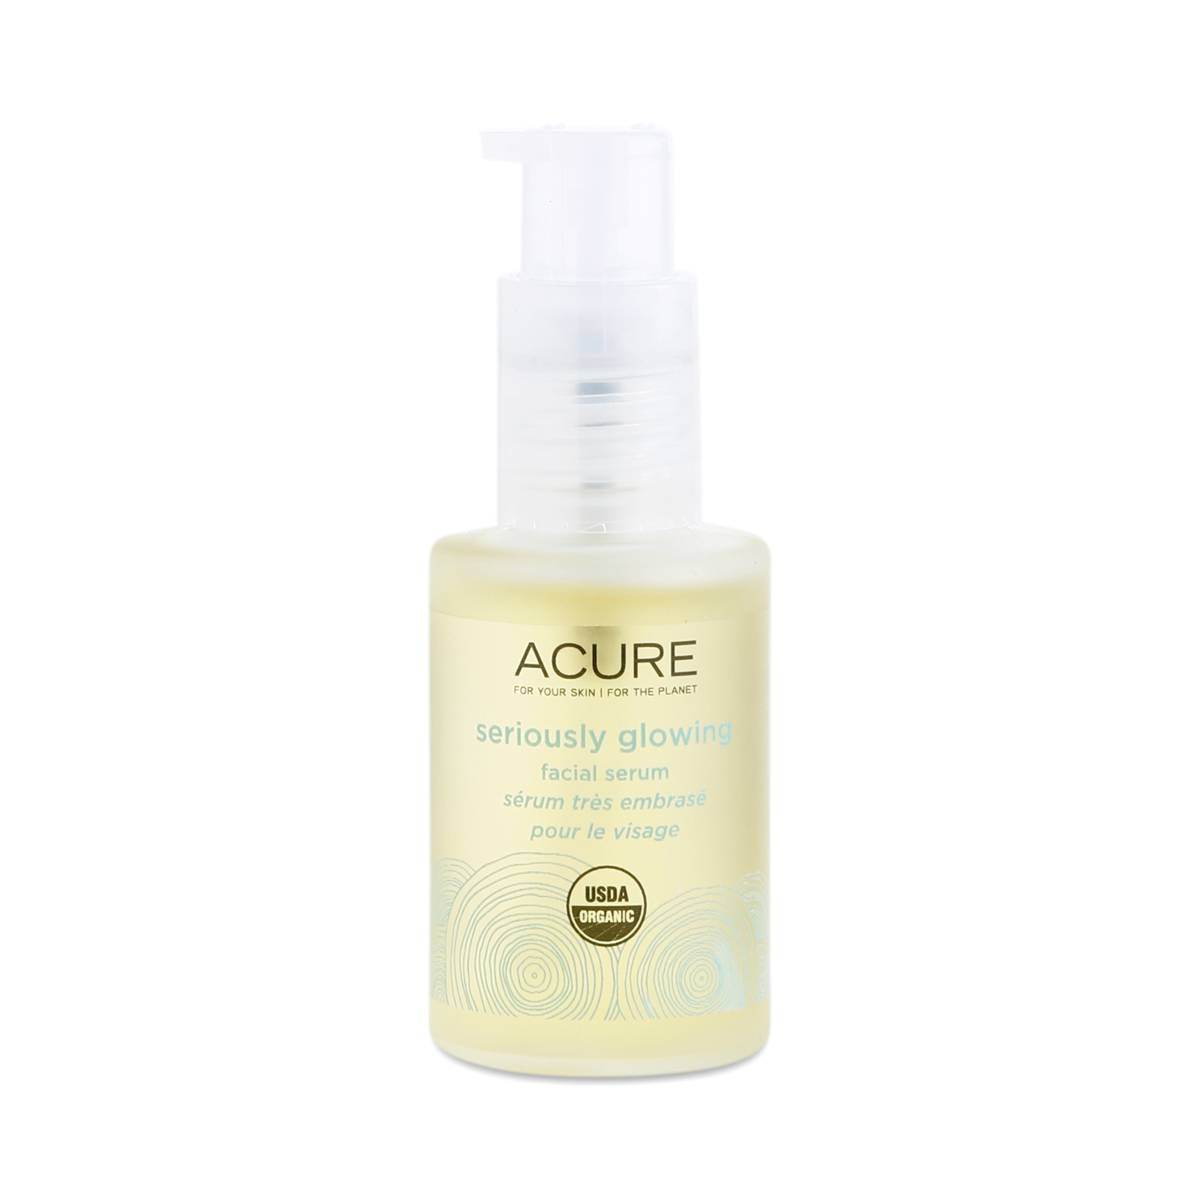 Acure Seriously Firming Facial Serum